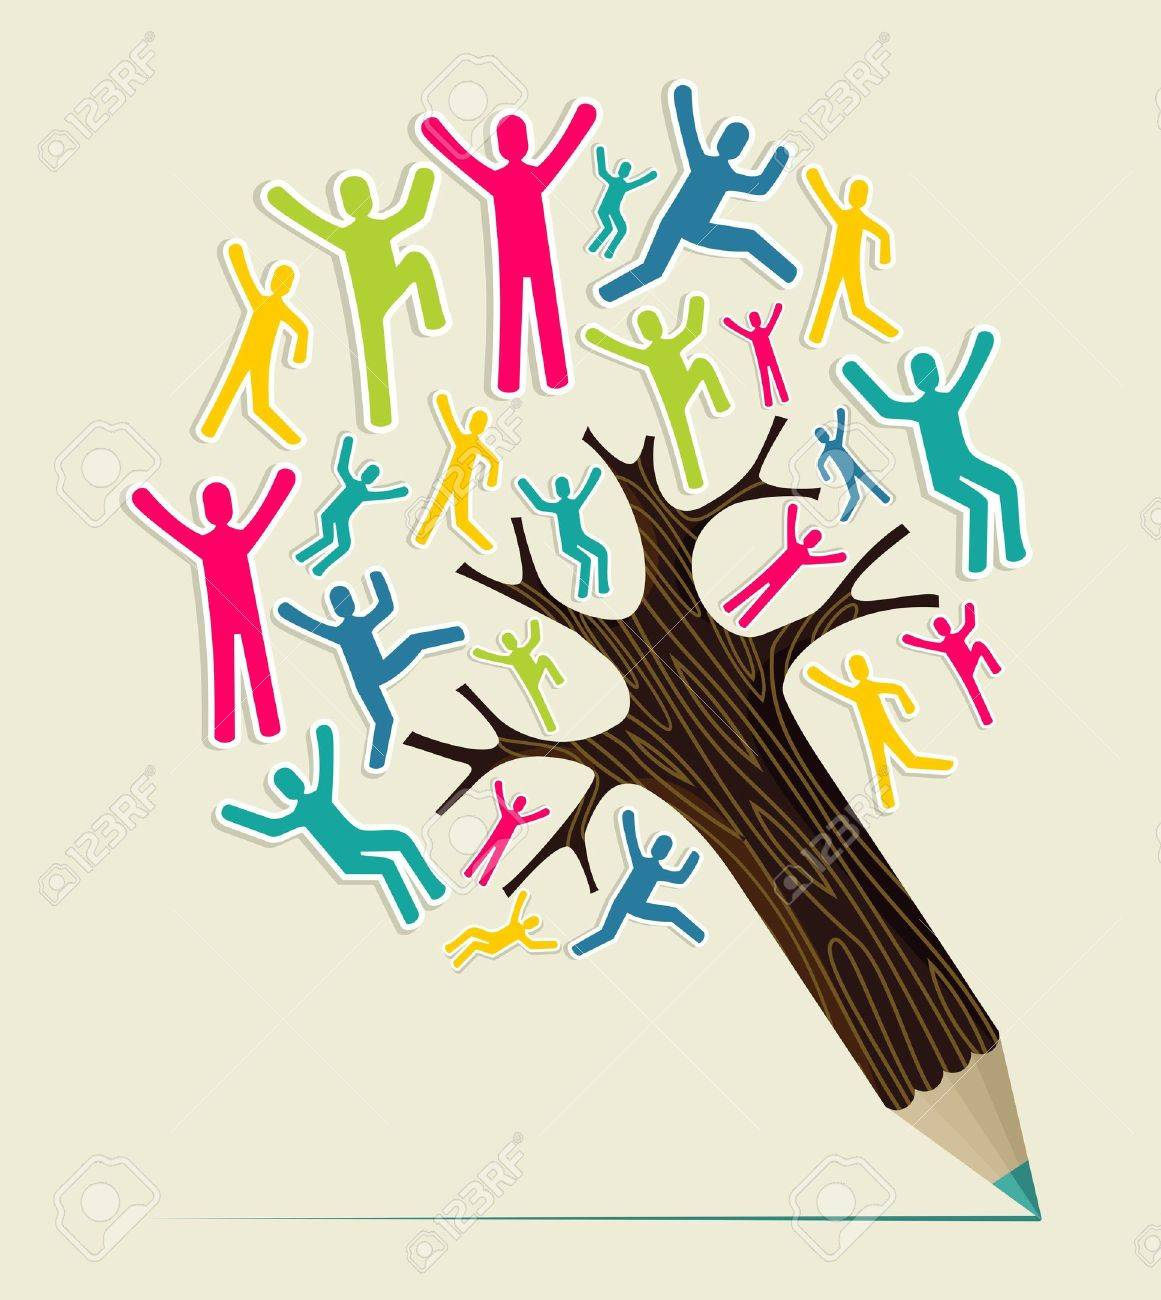 Diversity world people concept pencil tree. Vector illustration layered for easy manipulation and custom coloring. Stock Vector - 20602662